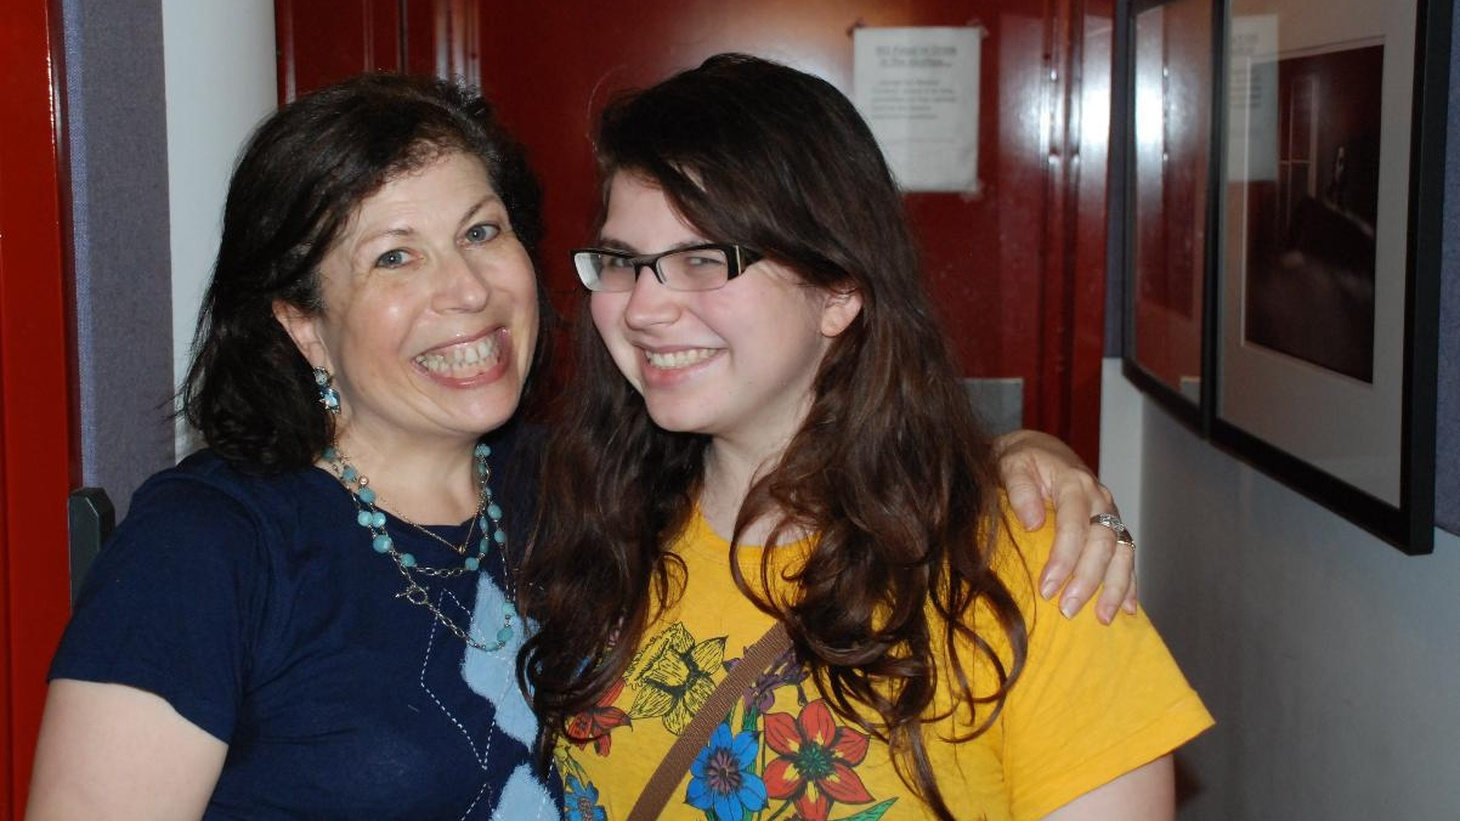 Veteran television producer Winnie Holzman and Savannah Dooley go from being mother and daughter to writing partners. They run the ABC Family dramedy Huge, which is set in a weight-loss camp for teens. While Holzman is an old hand at TV this is the first project by 25-year-old Dooley. Because of her inexperience the network paired her with her mom. Matt Holzman, Executive Producer of The Business, talks with the mother-daughter team about making Huge a family affair, their particular writing-partner fights, and nepotism in Hollywood.